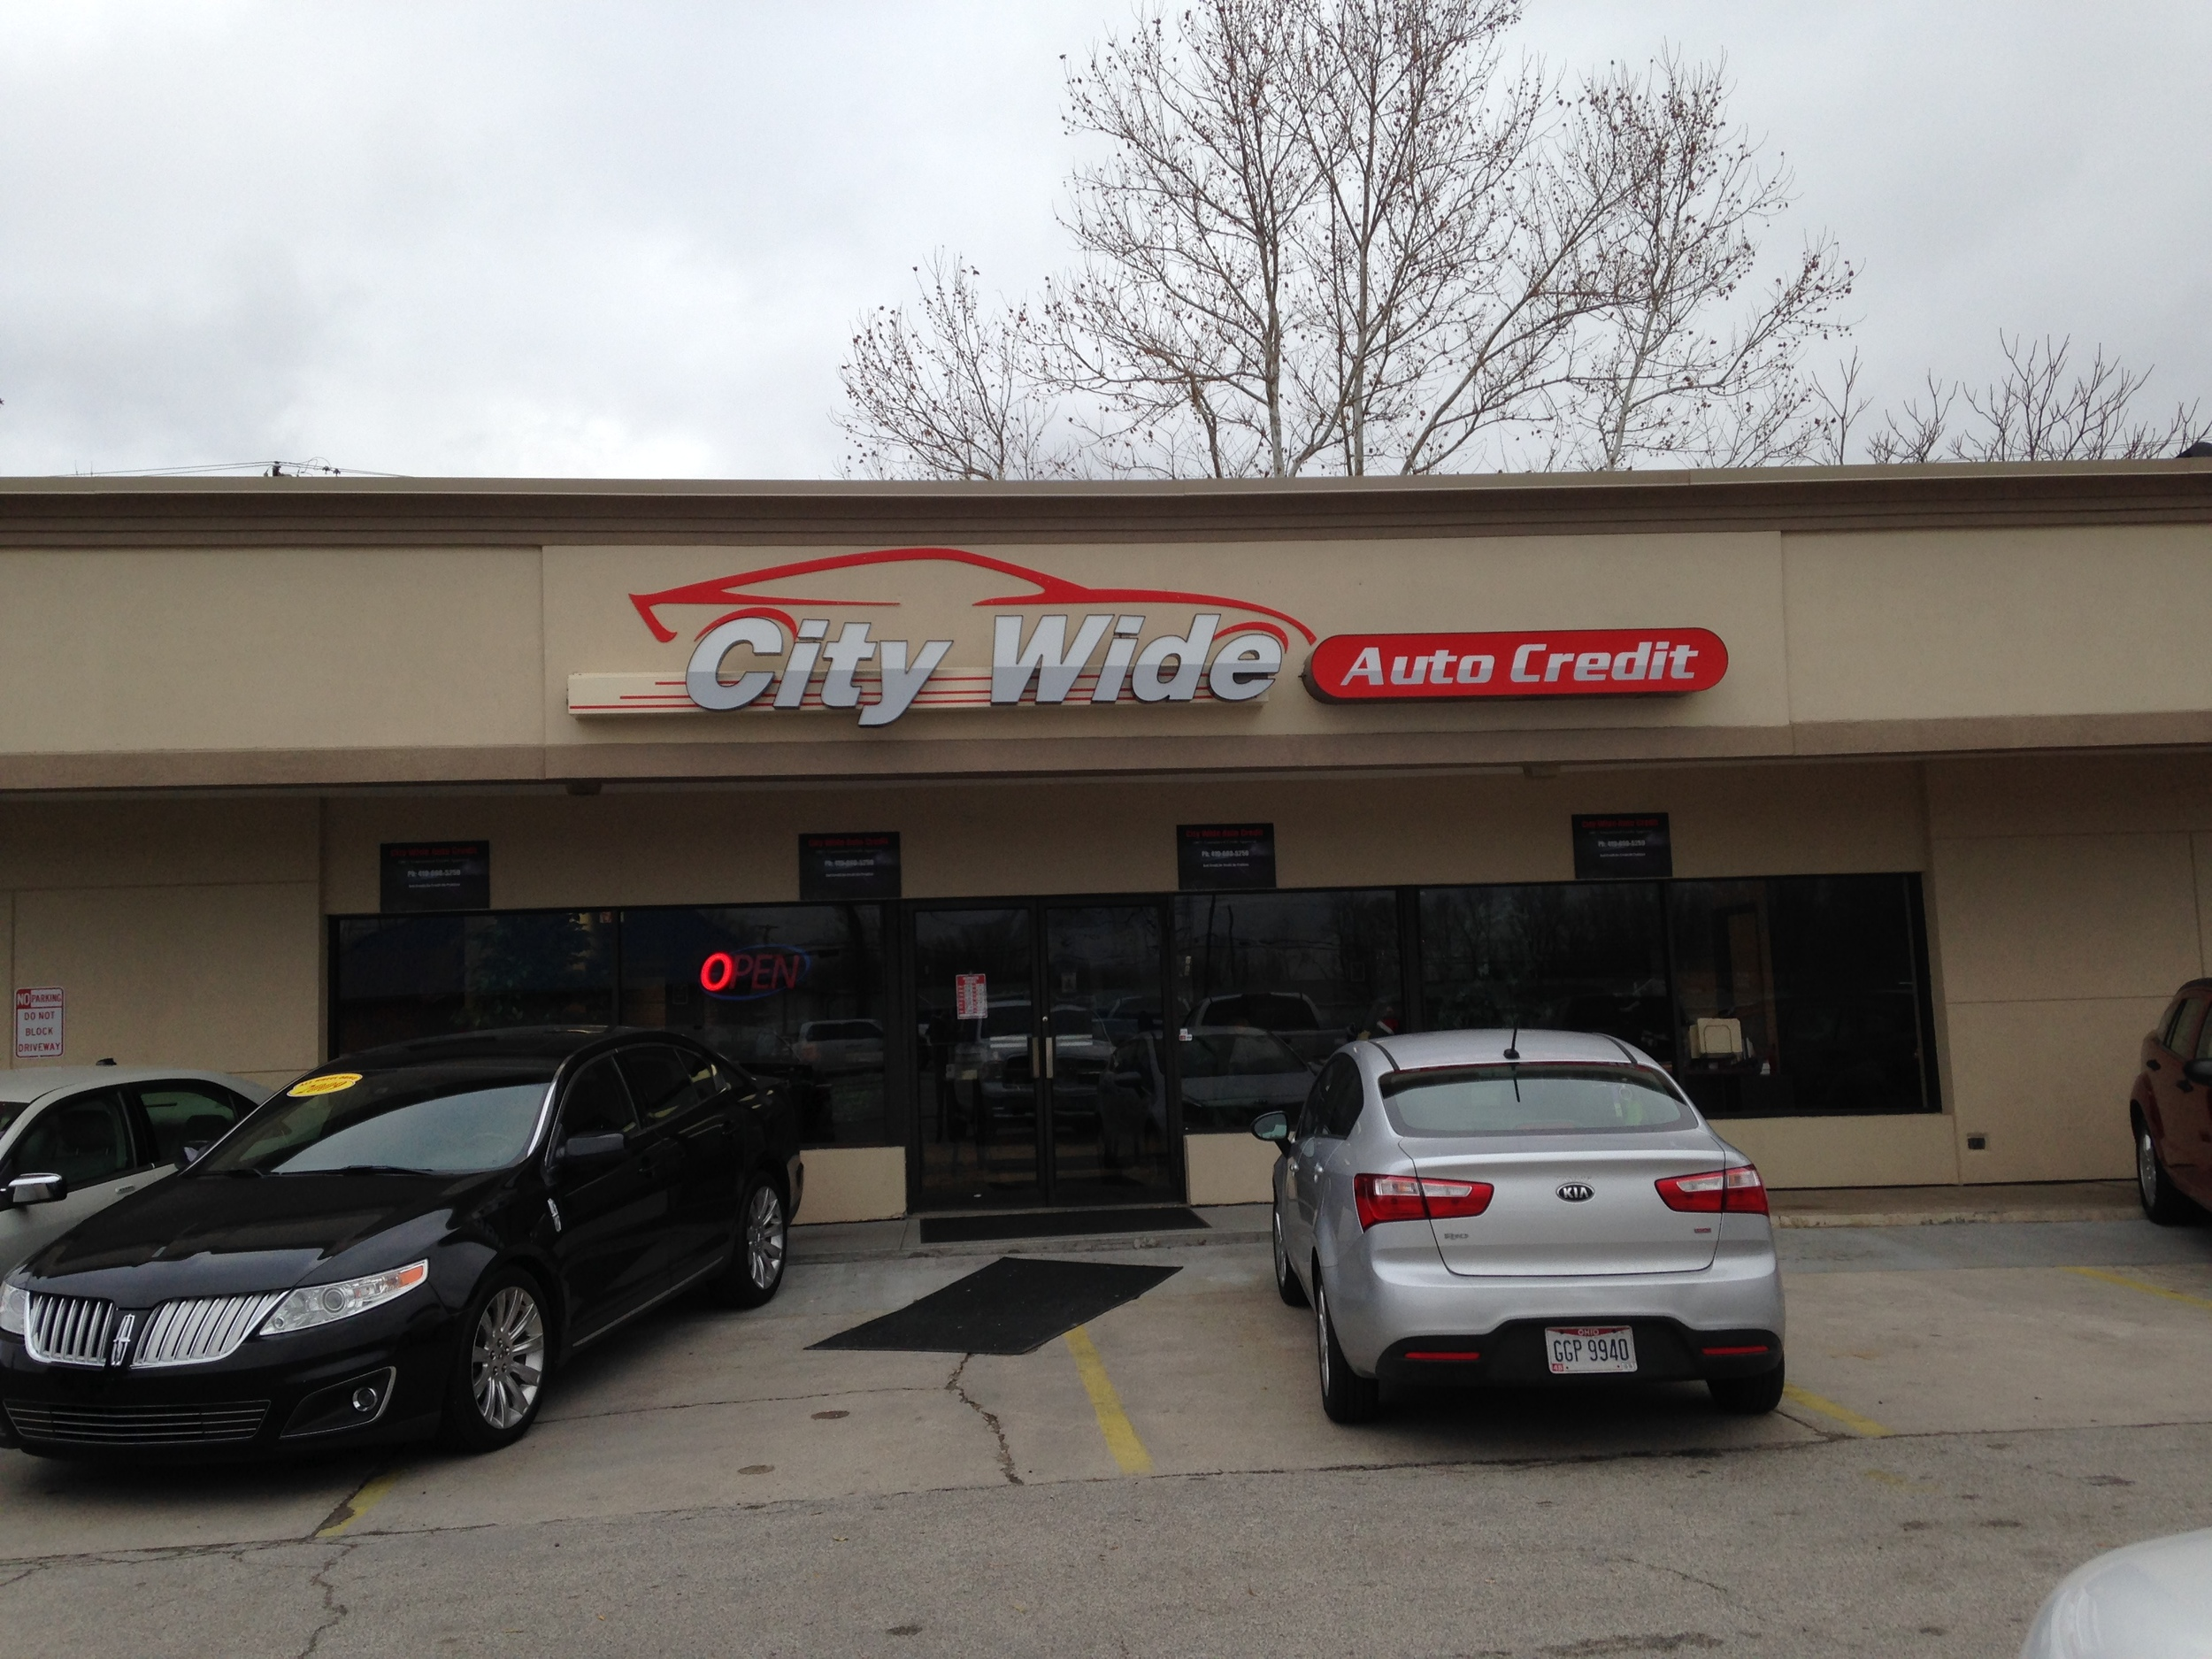 CITY WIDE AUTO CREDIT